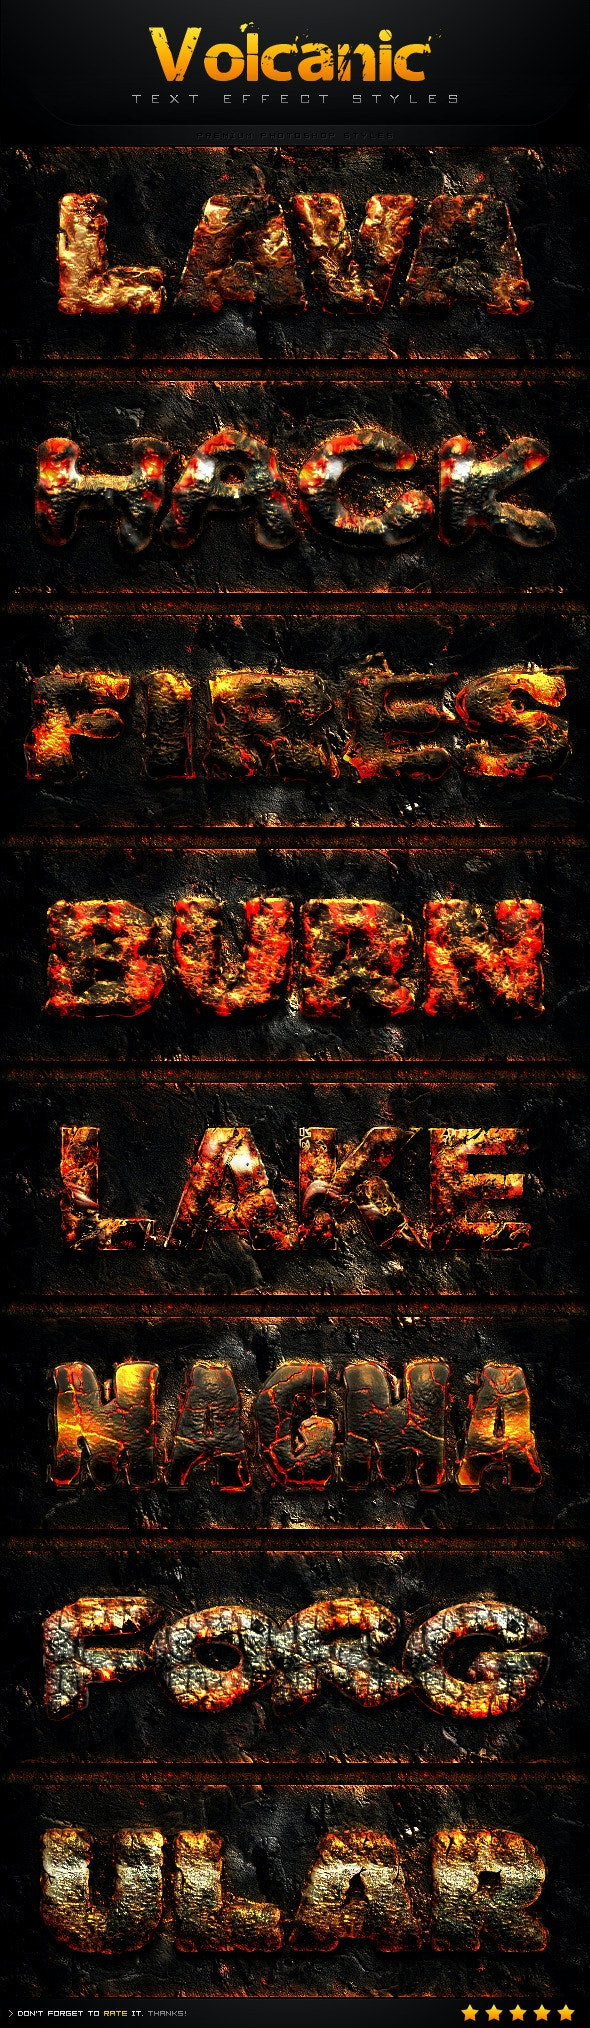 Volcanic Text Effect Styles - Text Effects Styles